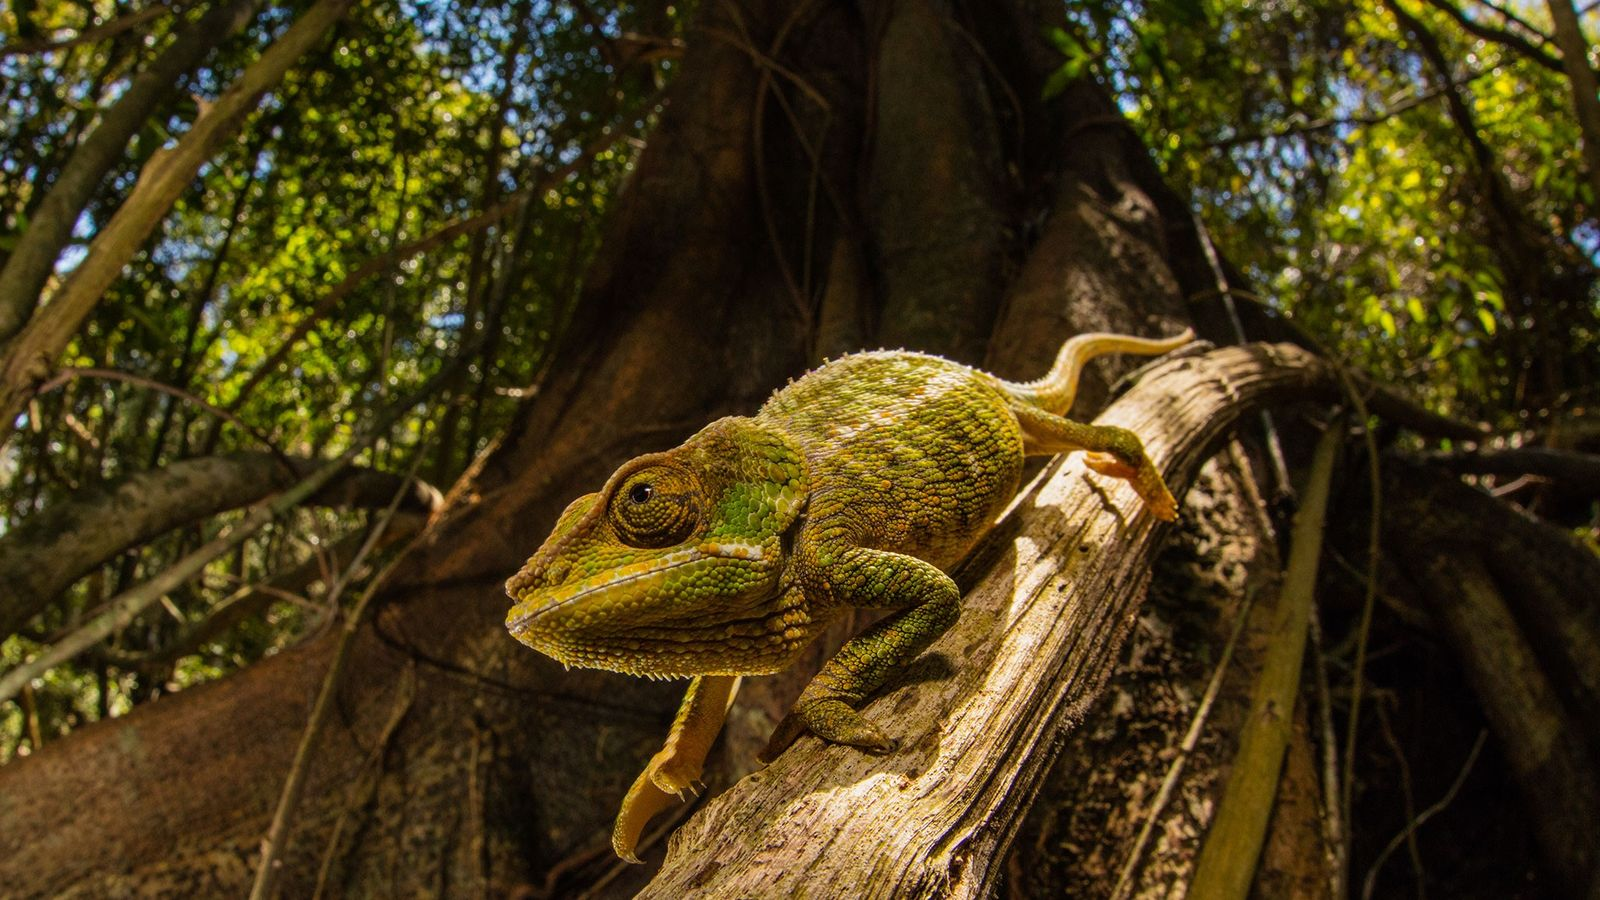 Chameleons can change skin color based on their surroundings. A new 'smart' skin, designed to use ...